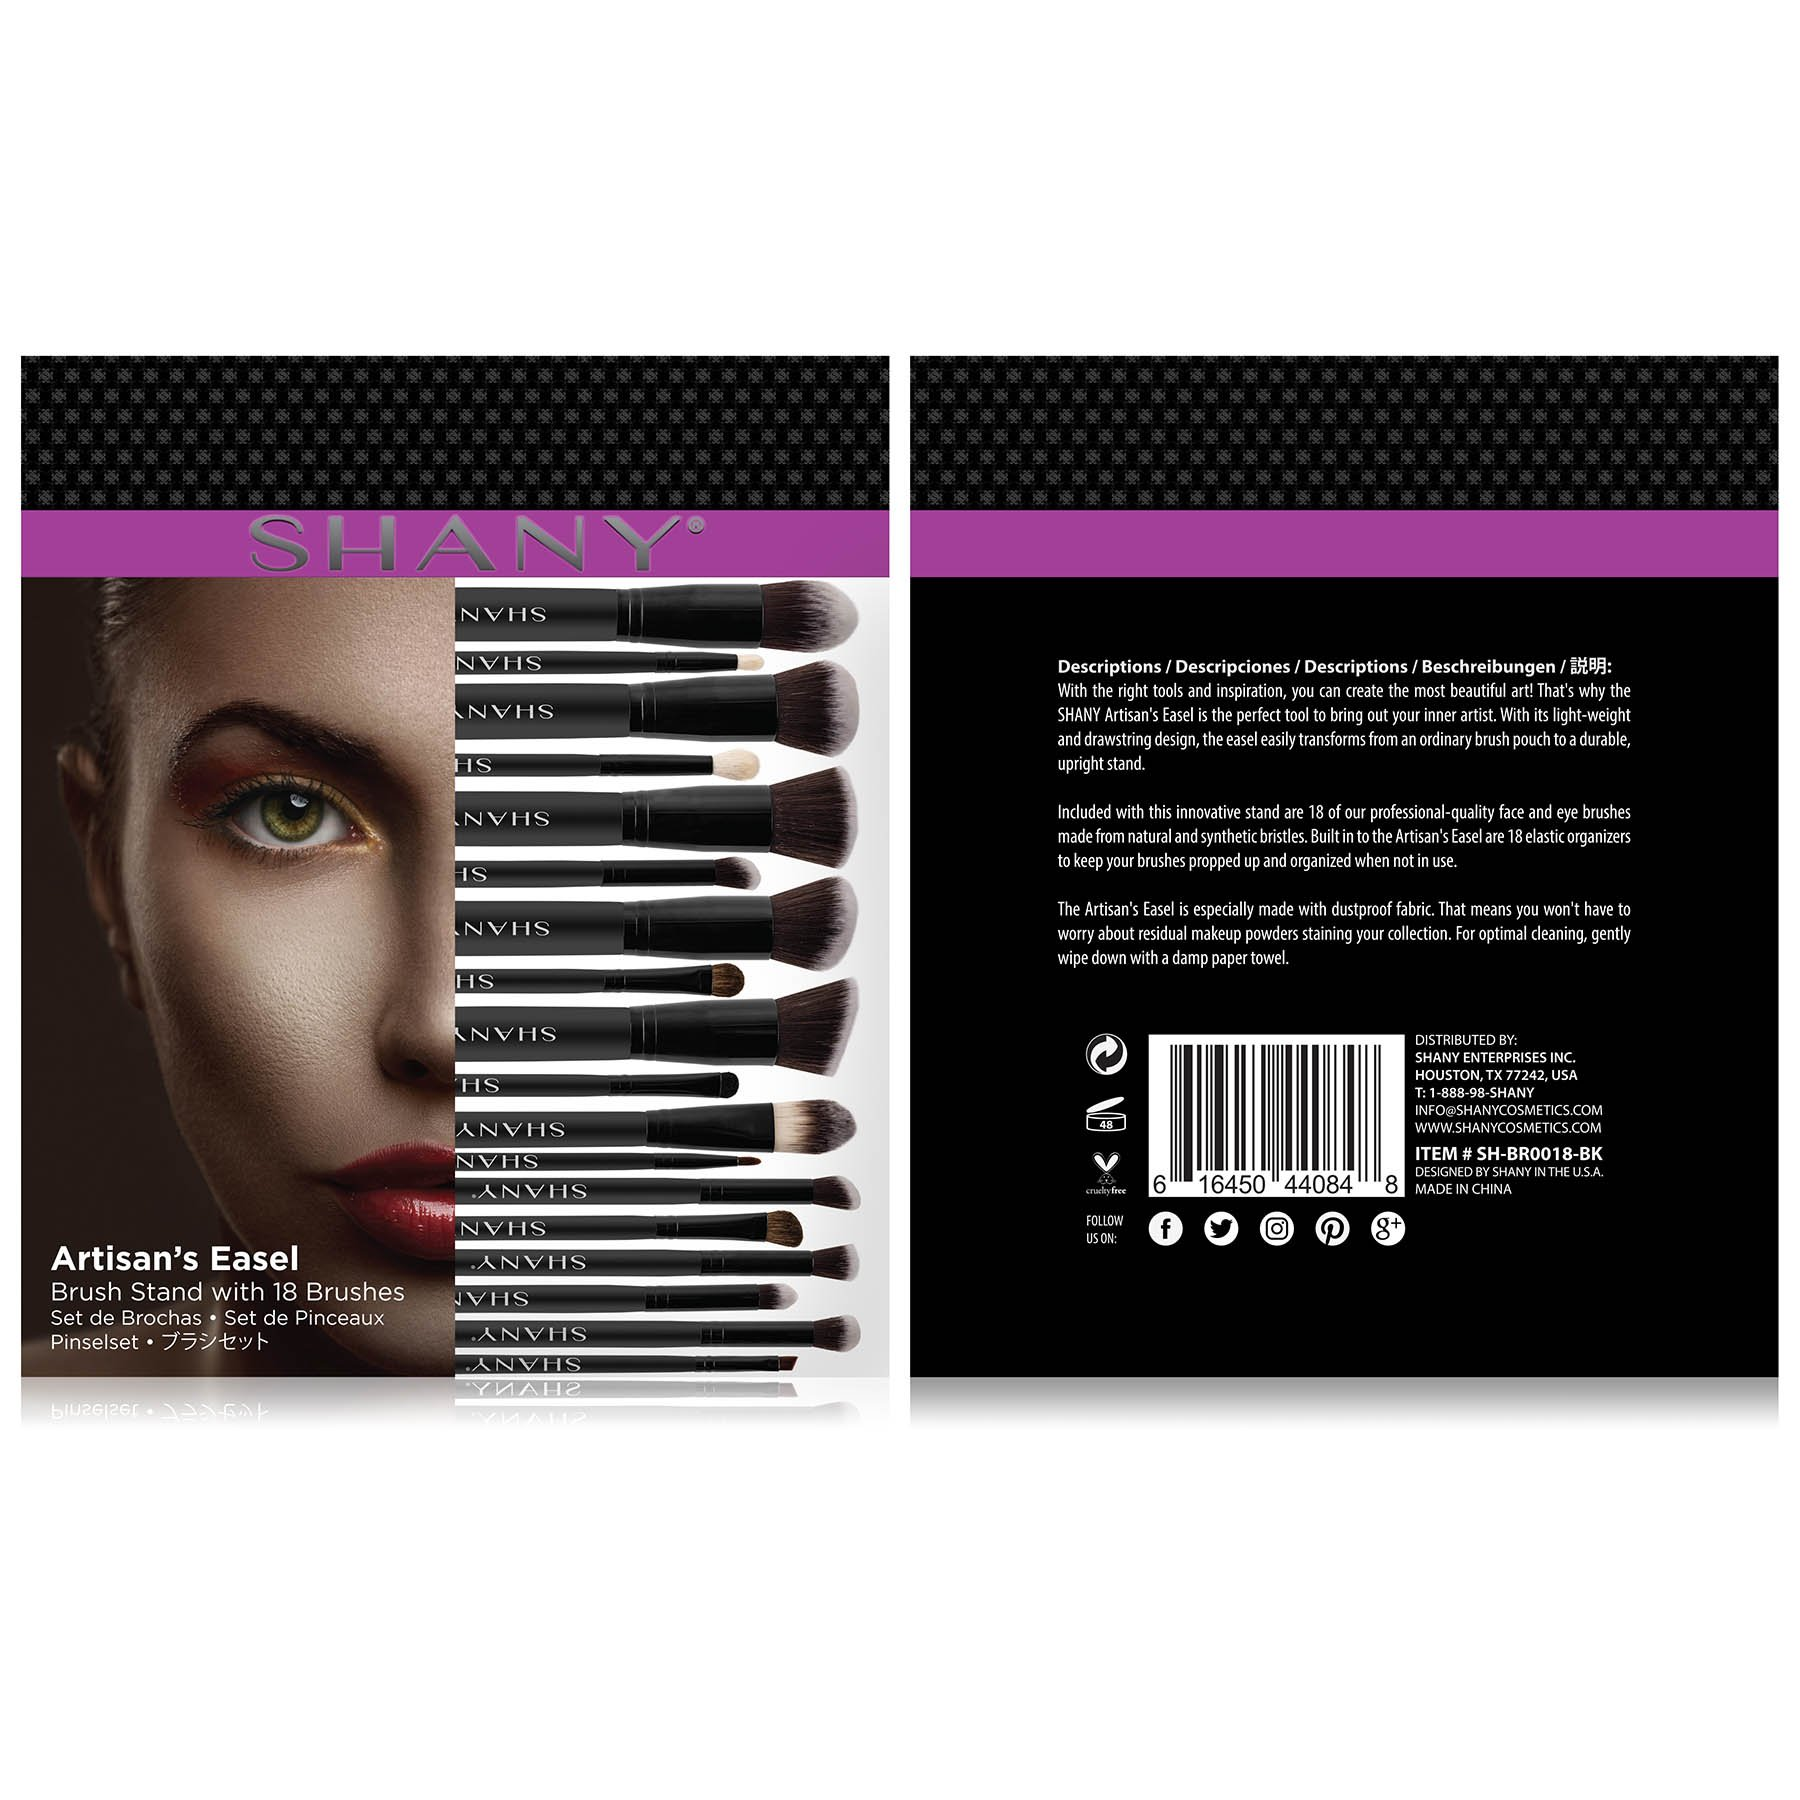 SHANY Artisan's Easel 18 Piece Elite Cosmetics Brush Collection, Black by SHANY Cosmetics (Image #5)